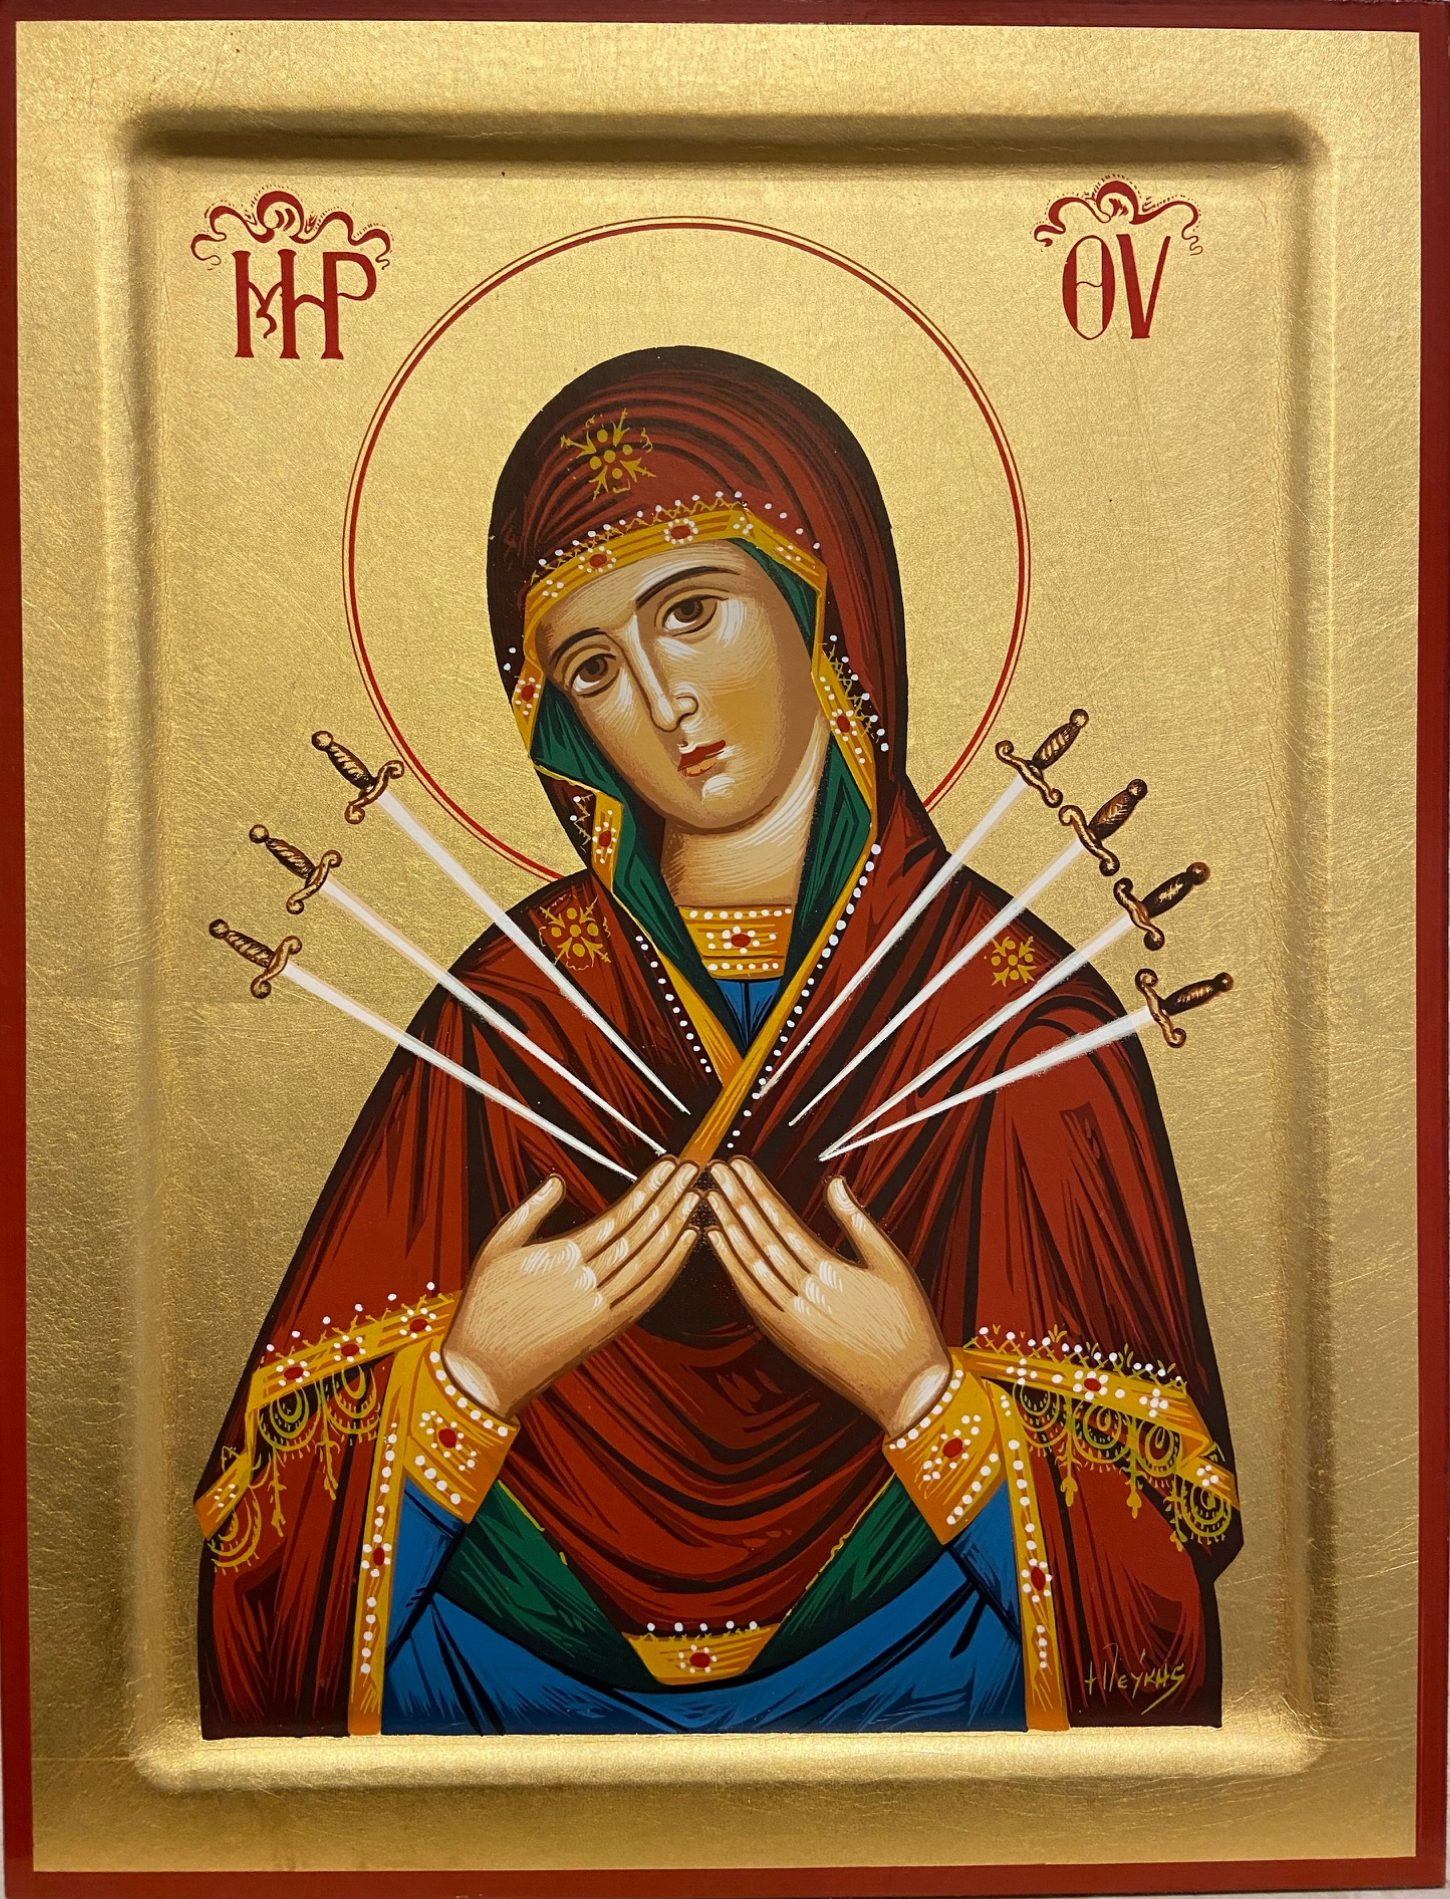 The Virgin Mary with Seven Swords / Παναγία Επτά Σπαθιά